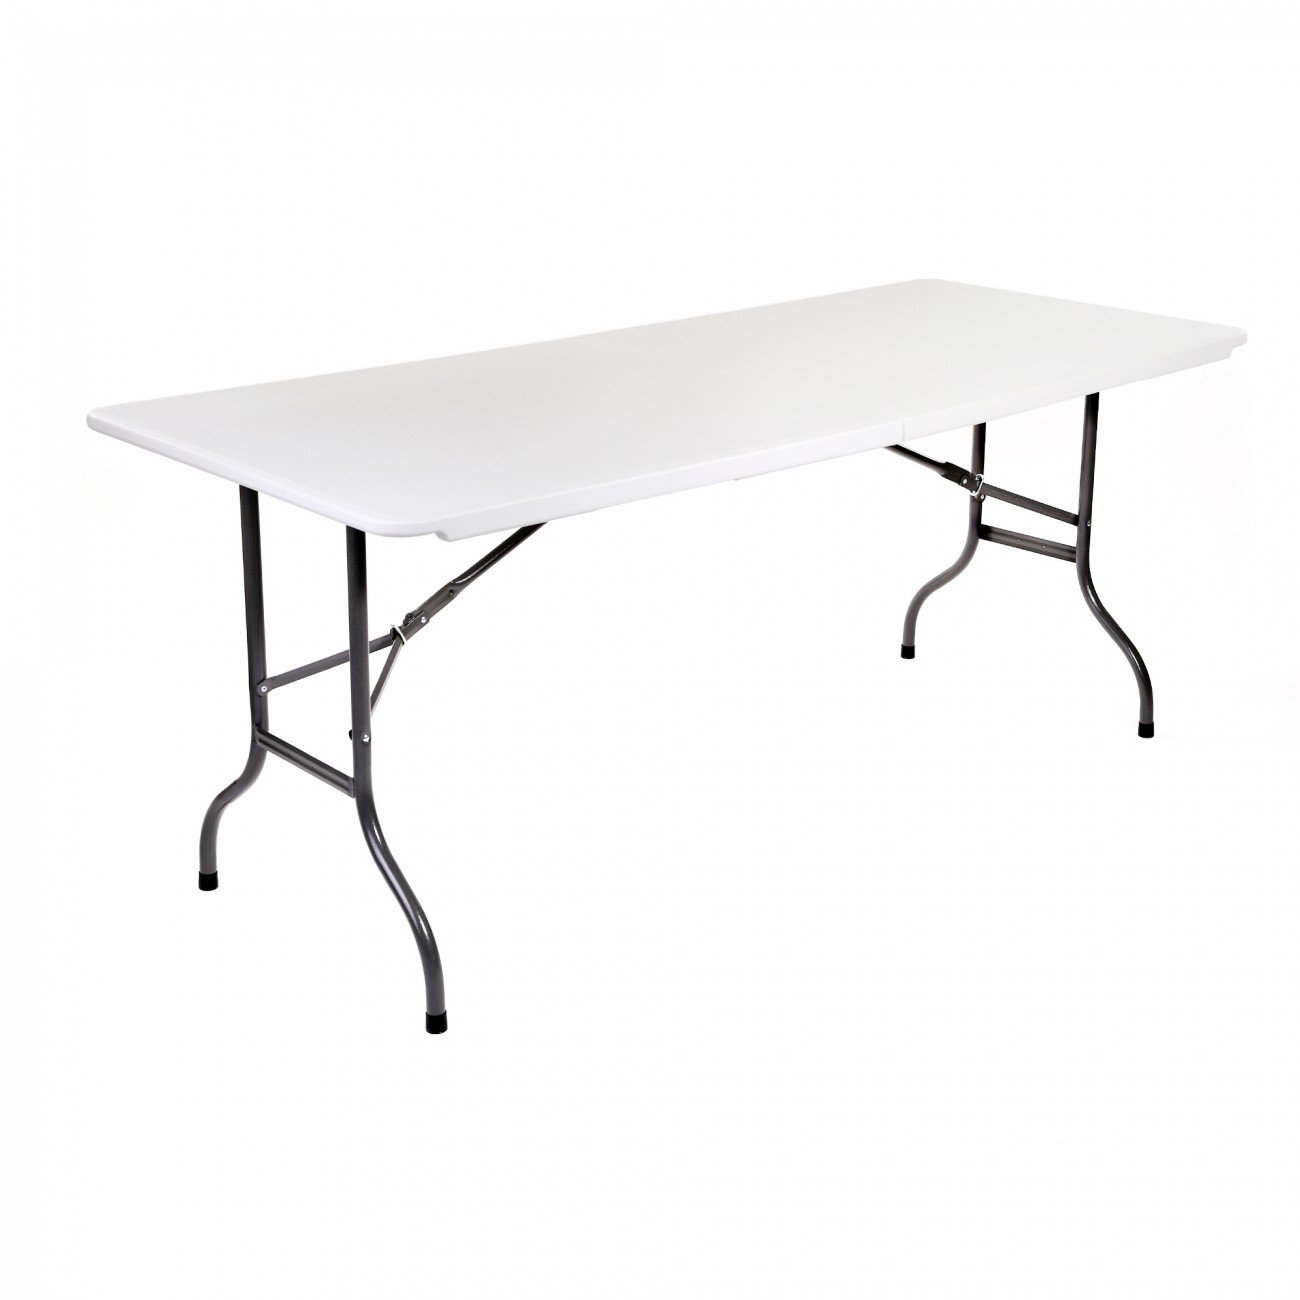 Acheter table pliante table pliable table rabattable table for Table jardin pliante